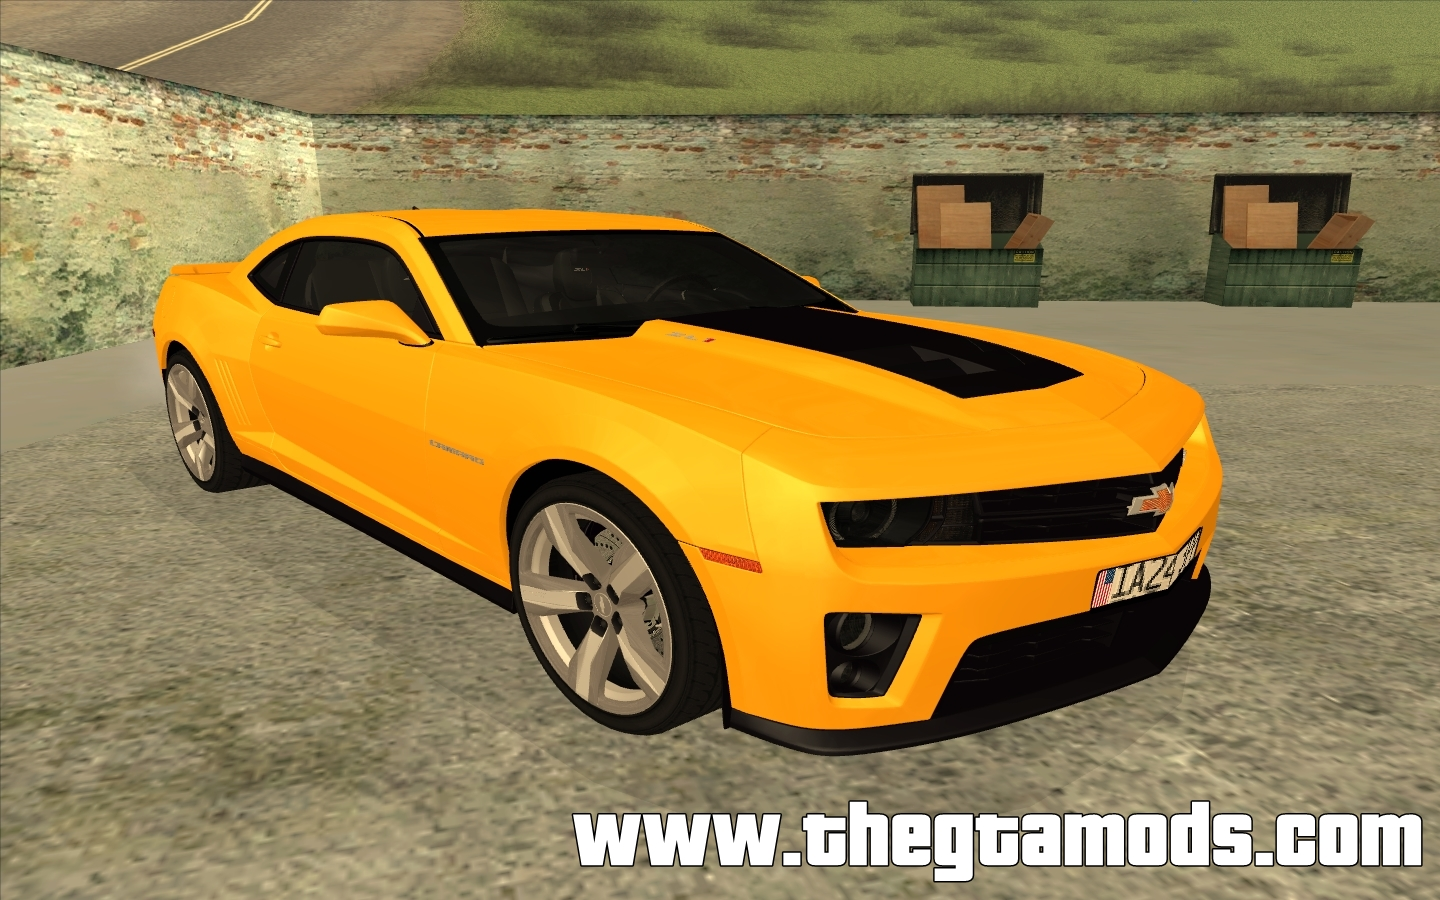 Chevrolet Camaro 3.6 2011 photo - 7